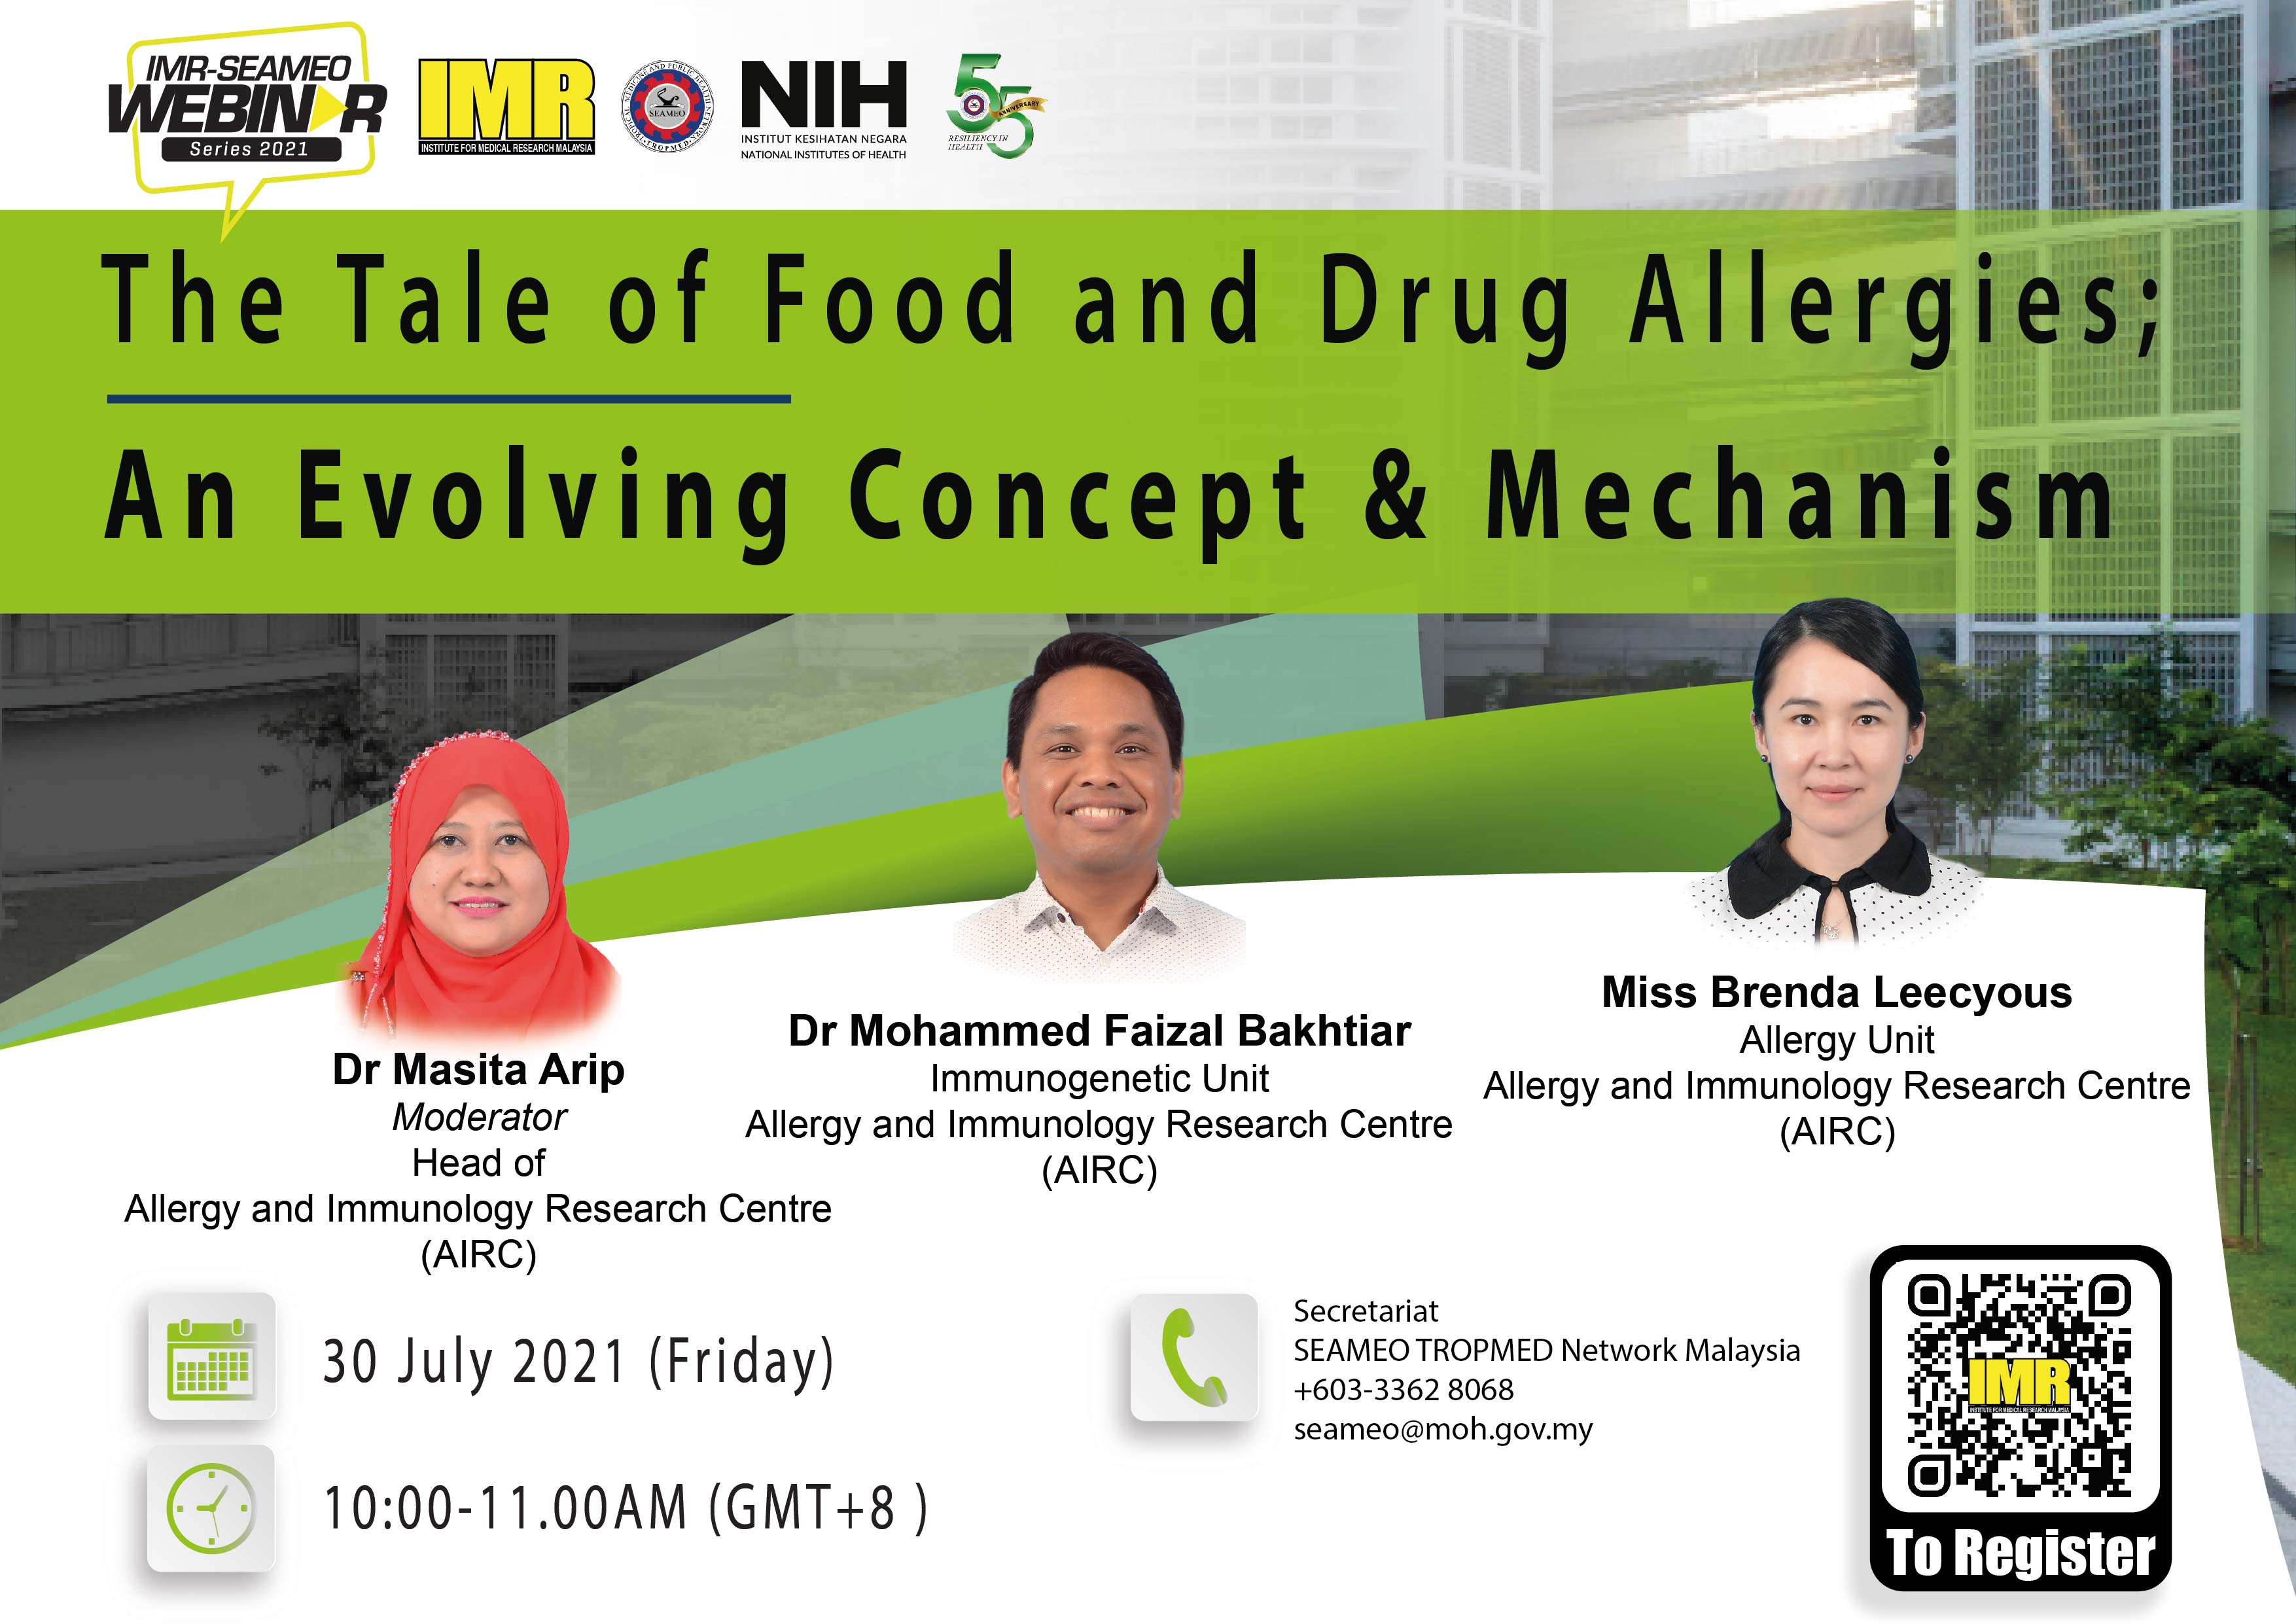 The Tale of Food and Drugs Allergies ; An Evolving Concept & Mechanism